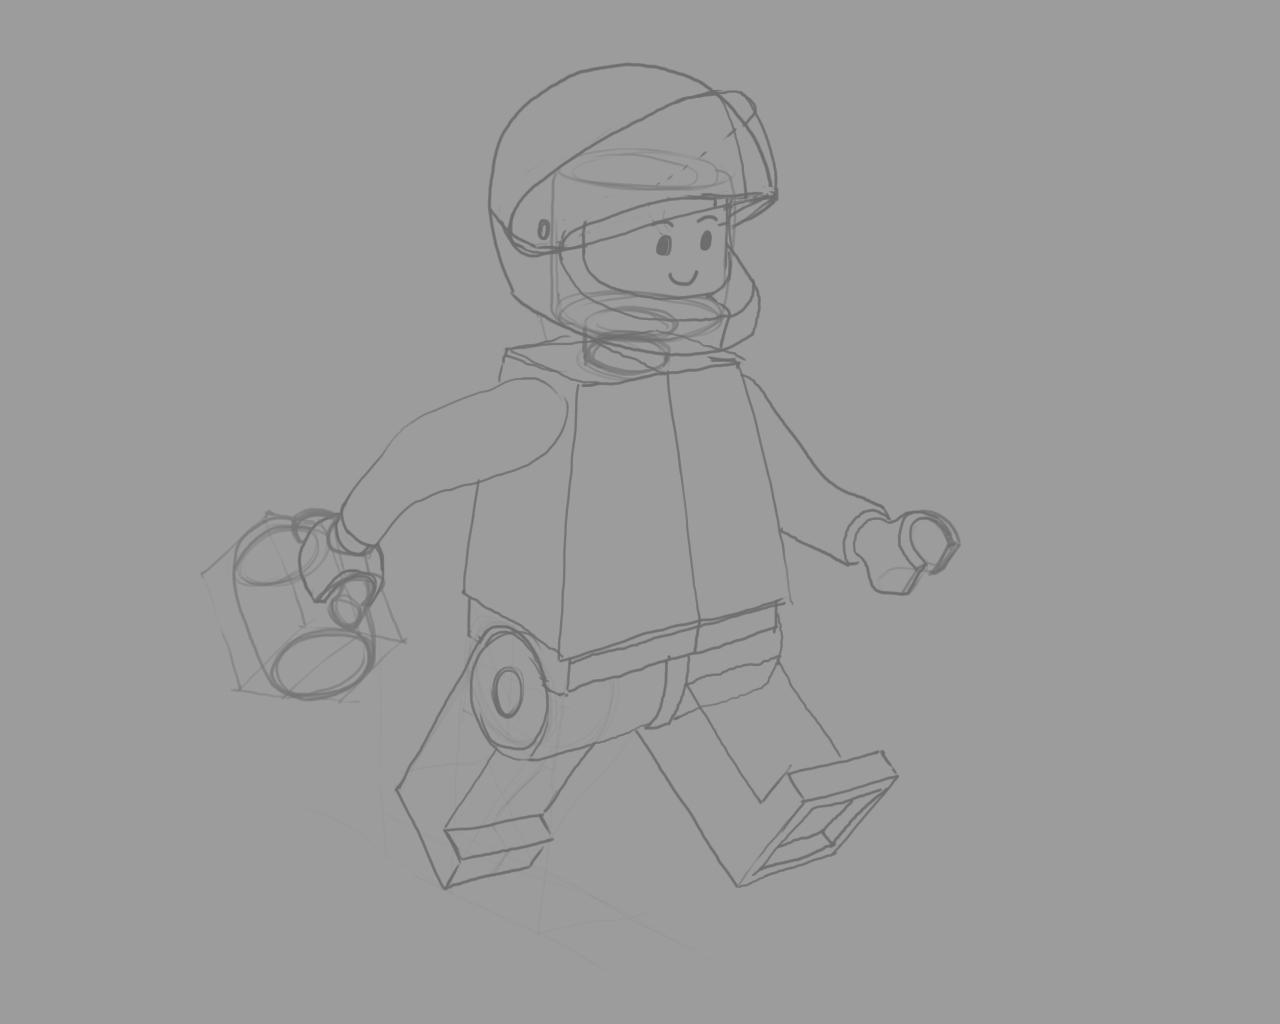 Real Astronaut - image 3 - student project